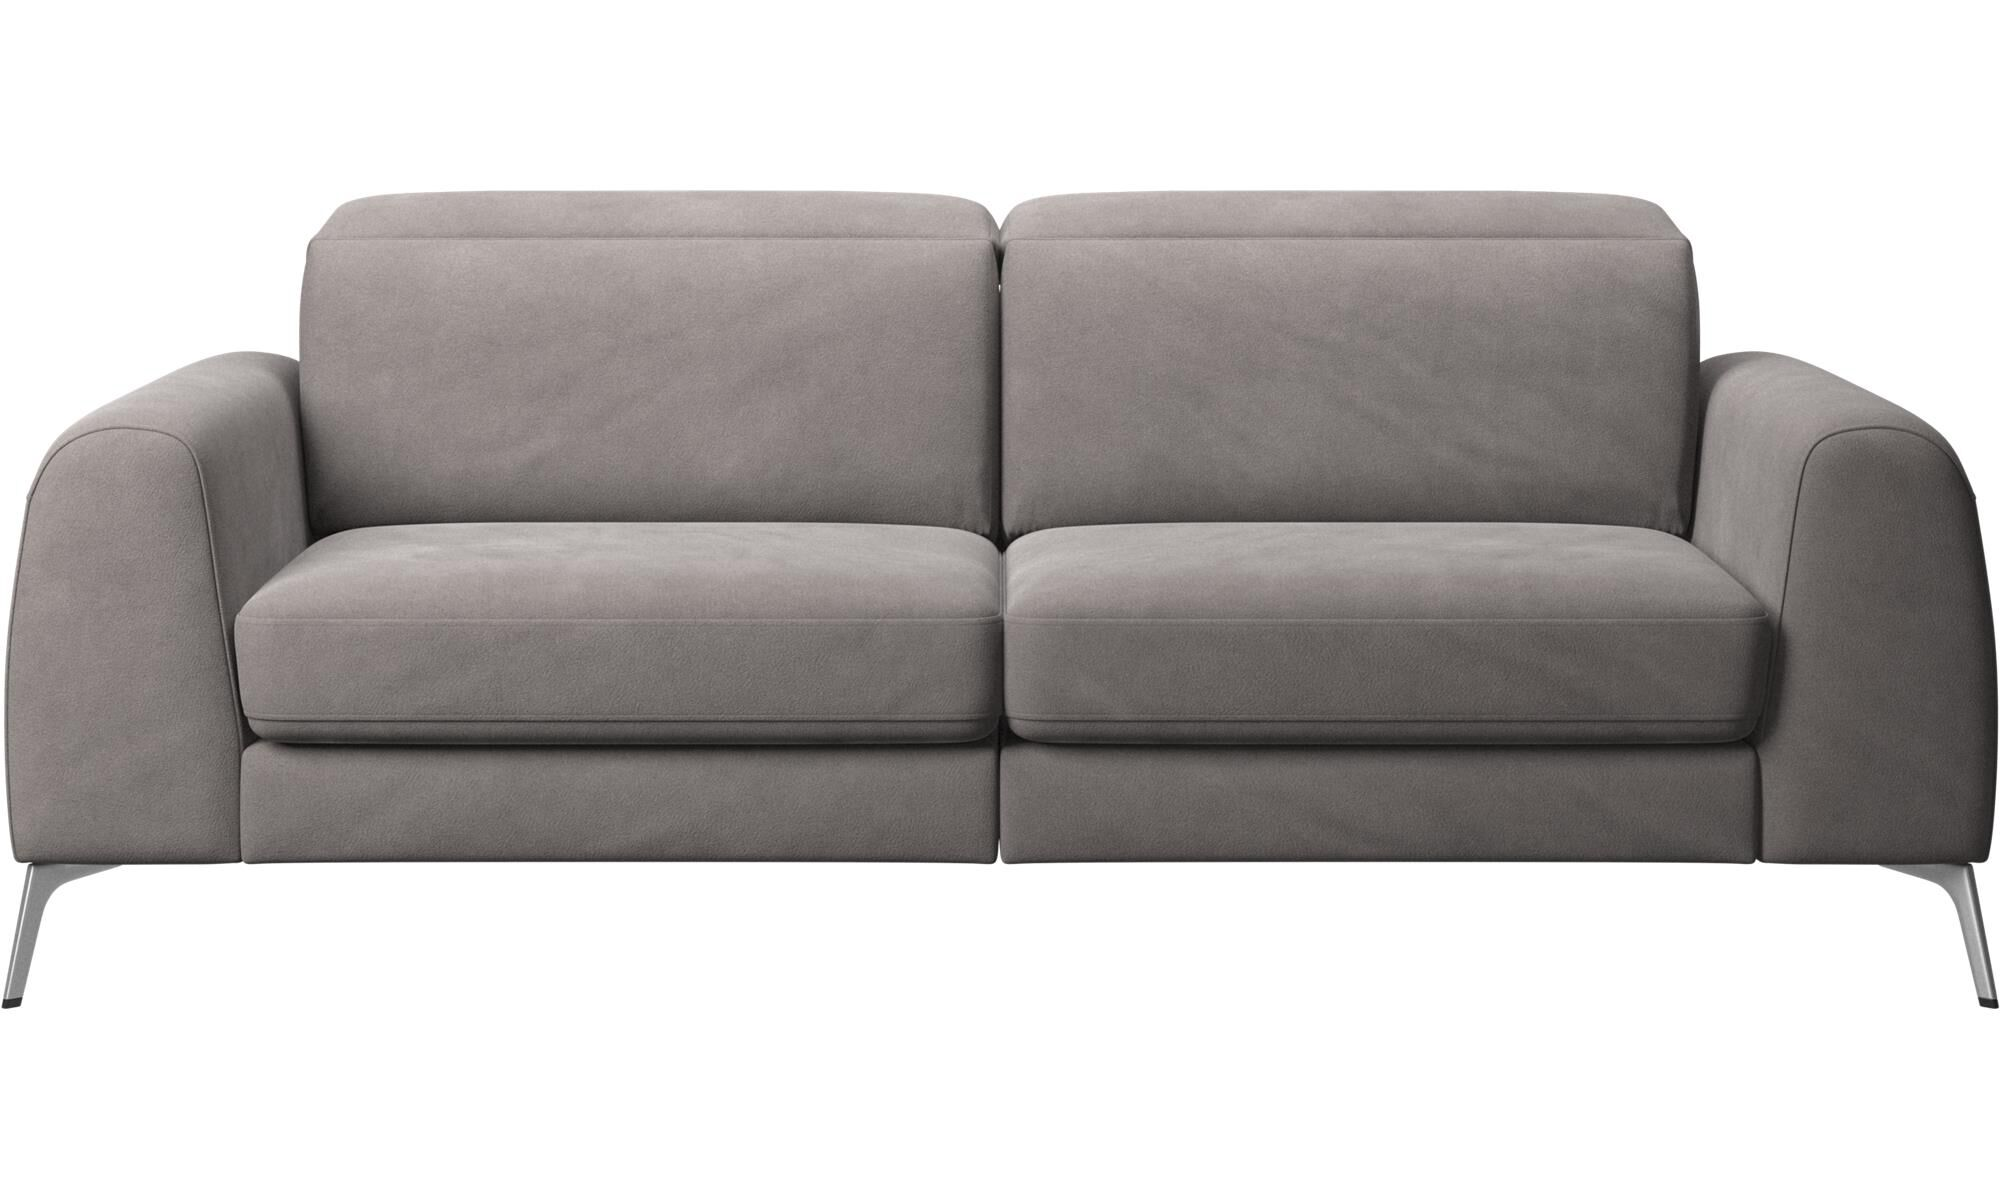 sofa beds madison sofa with sleeper function and manual headrest grey fabric